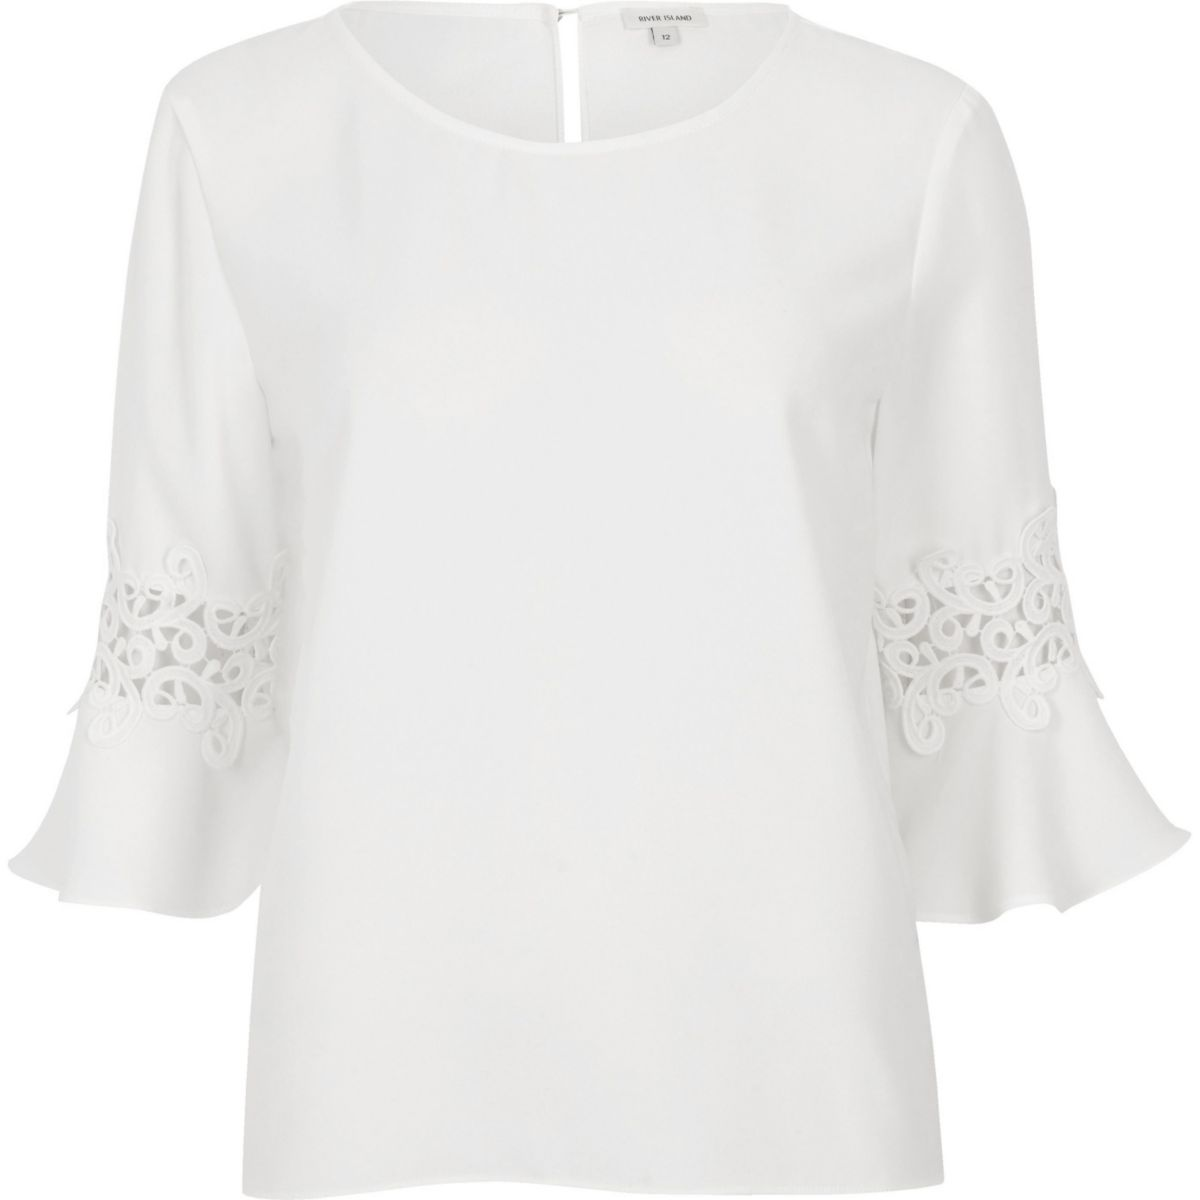 White lace insert bell sleeve top